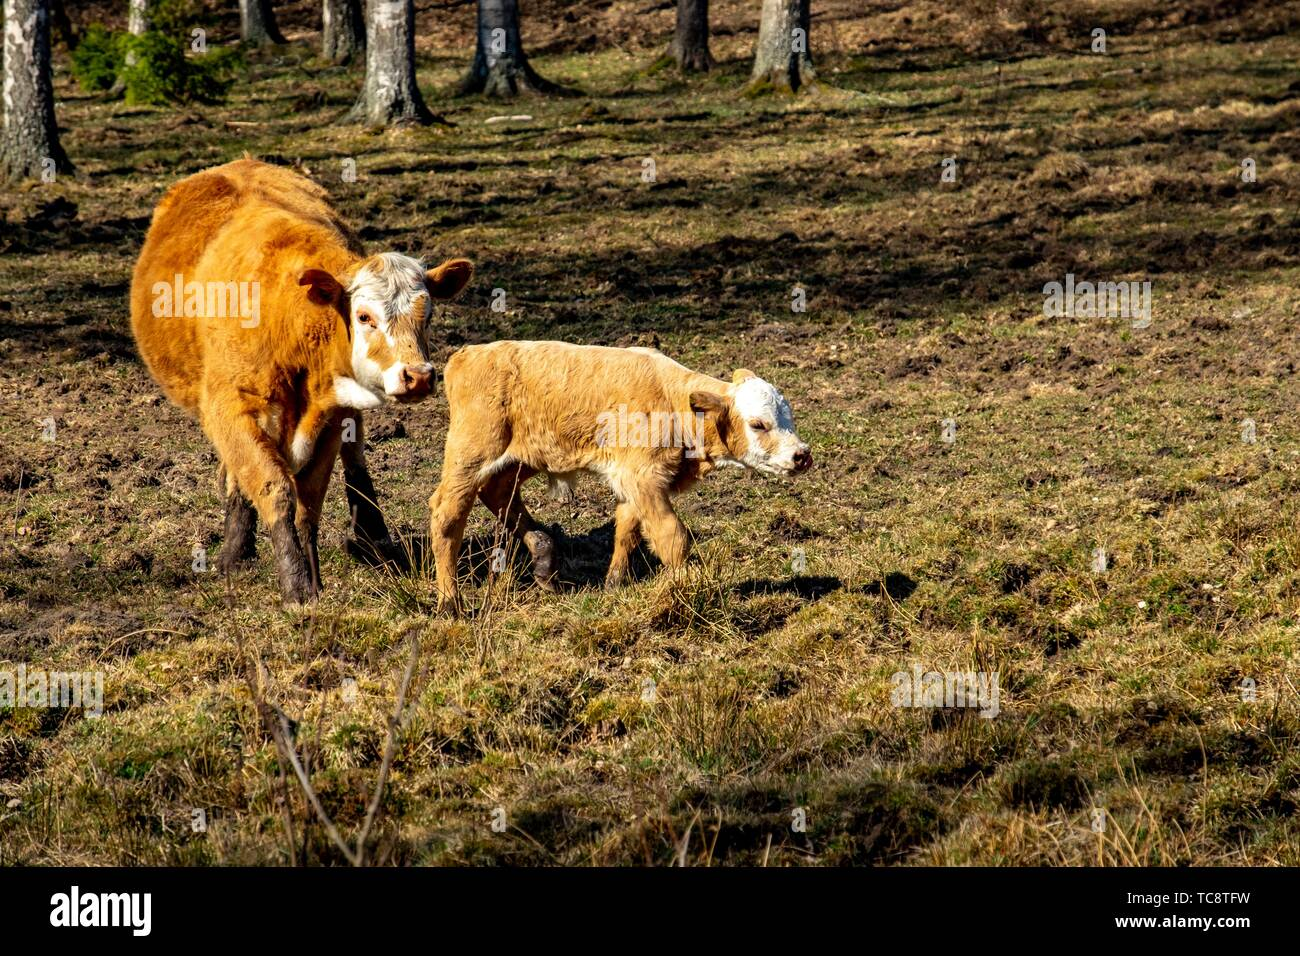 Calfs on a grazing field in Sweden. - Stock Image